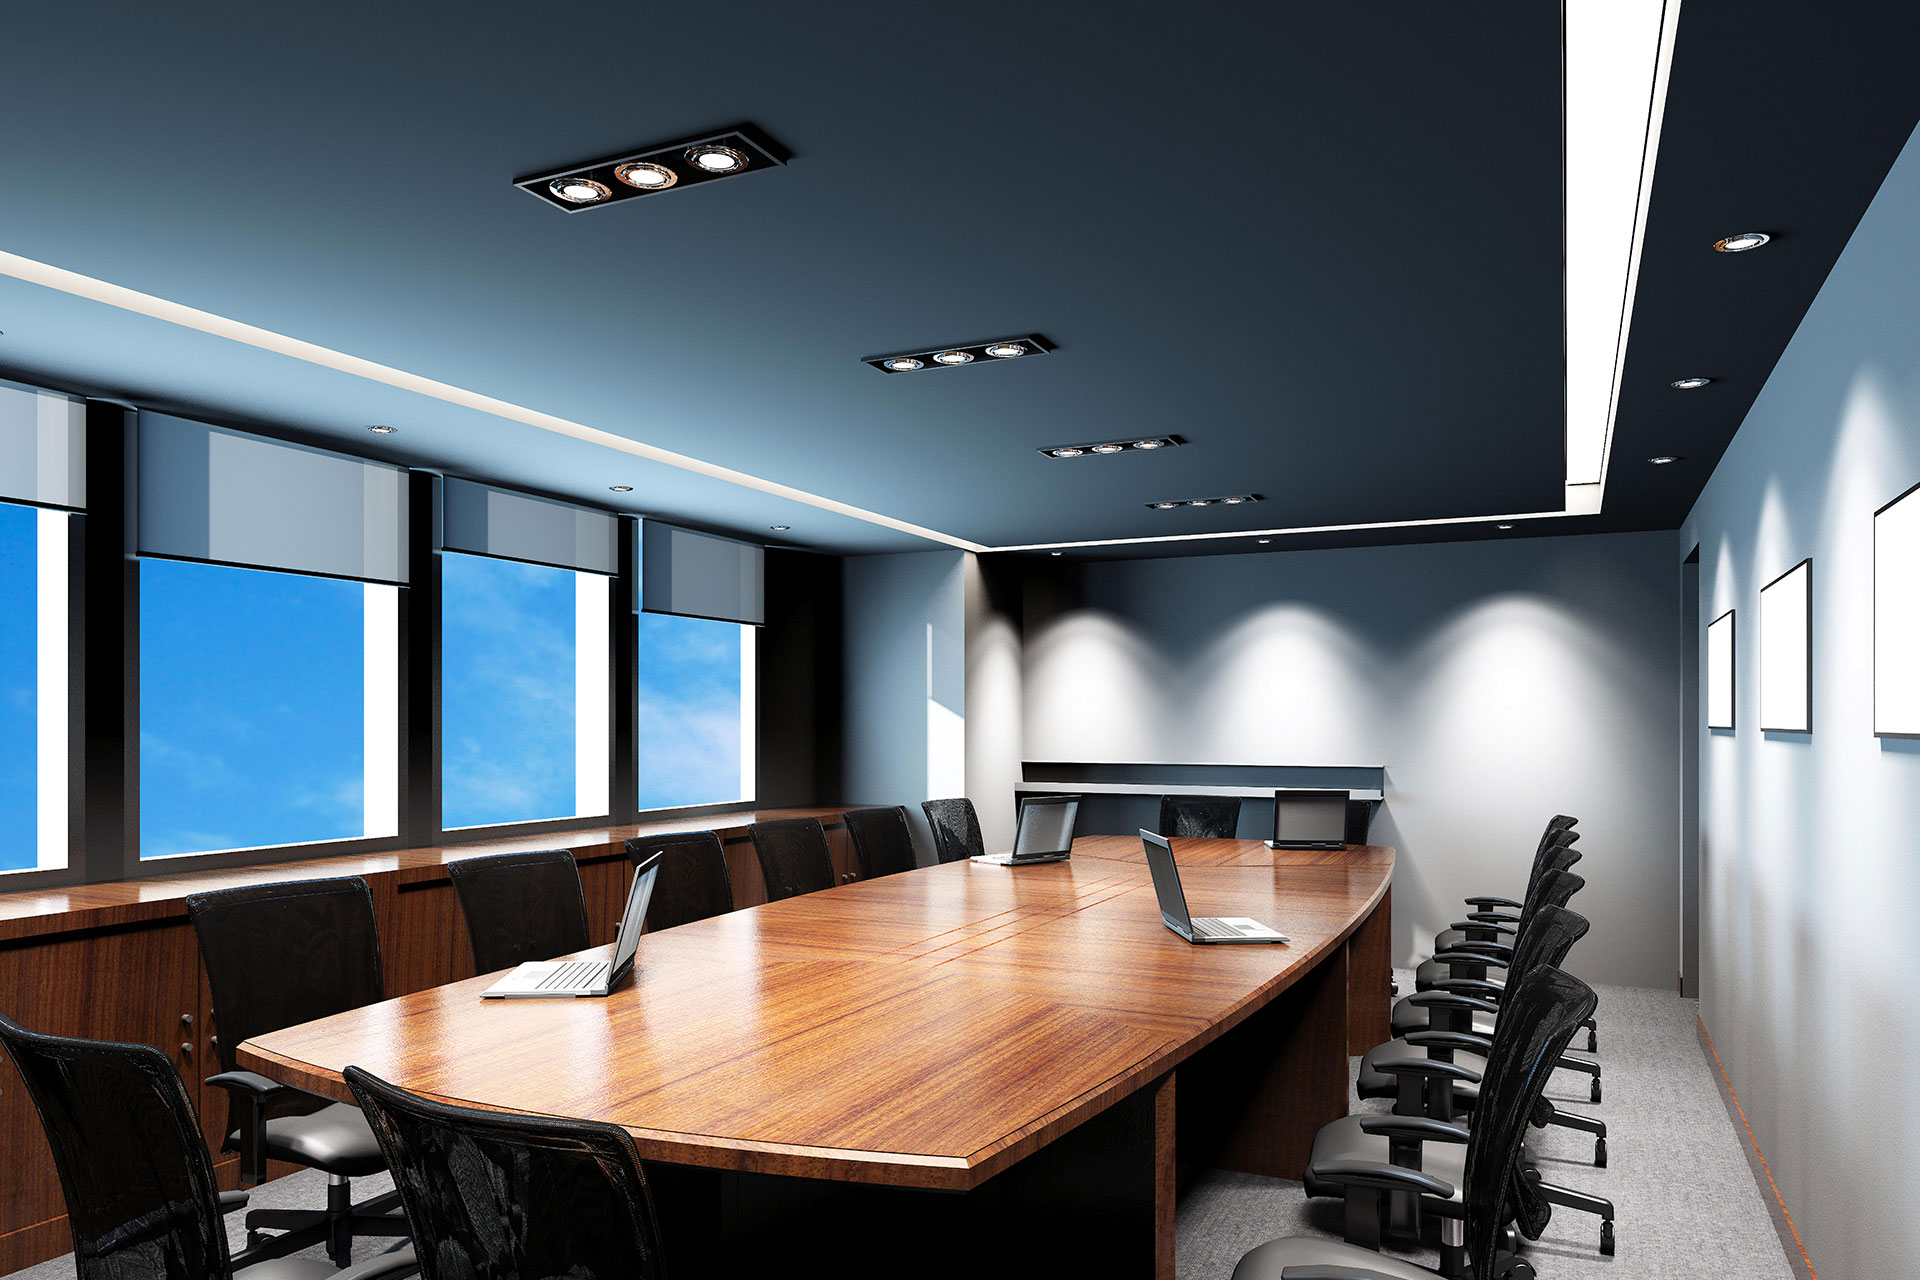 Business Automation Conference Room